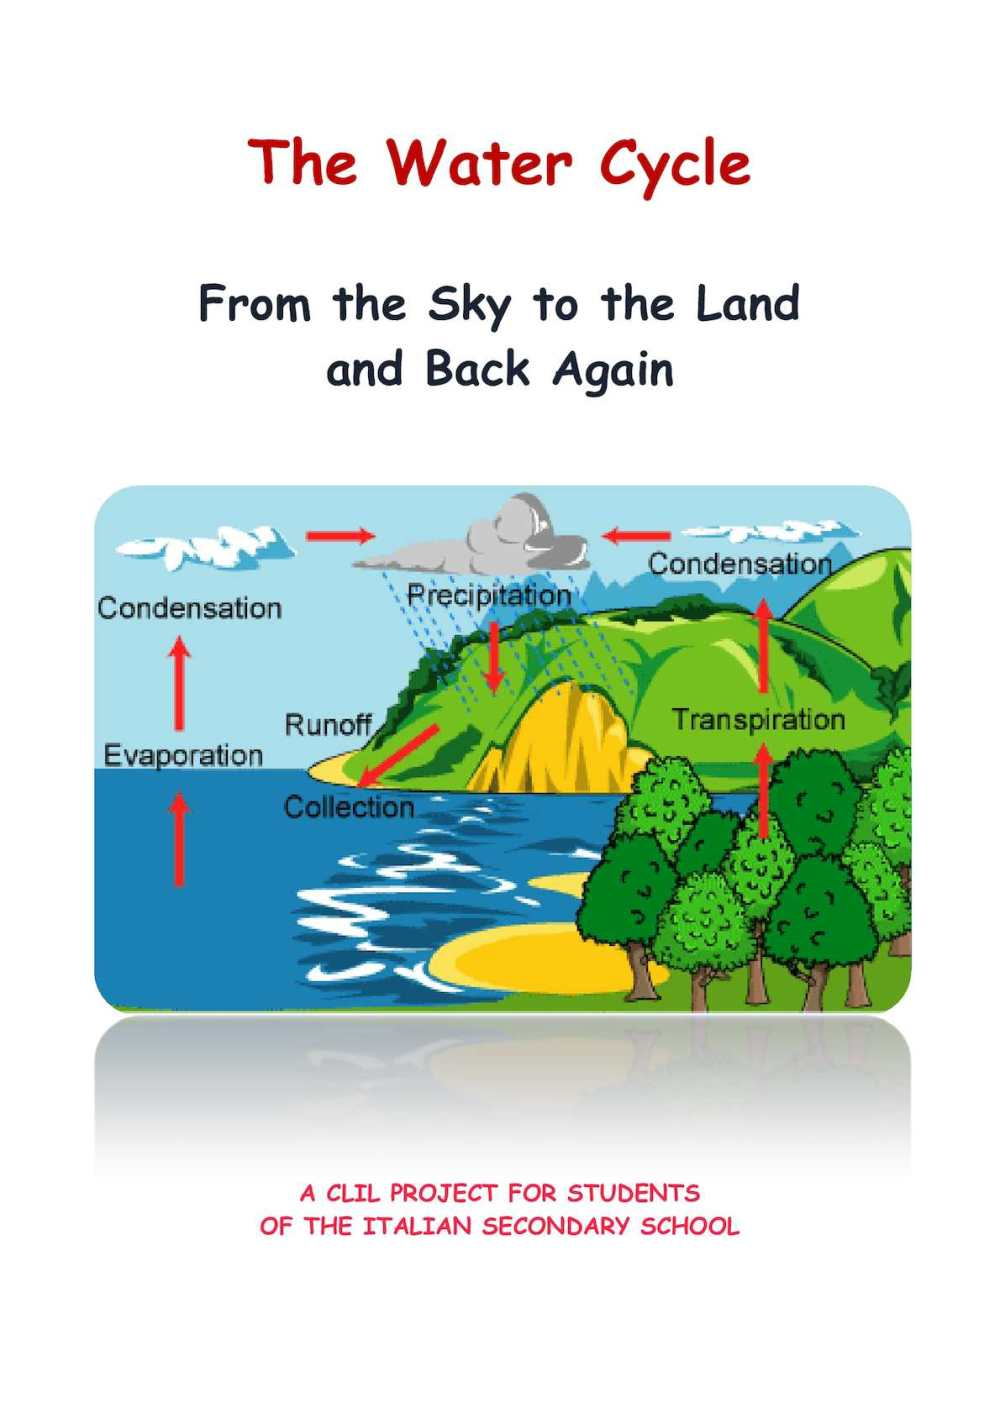 medium resolution of the water cycle from the sky to the land and back again